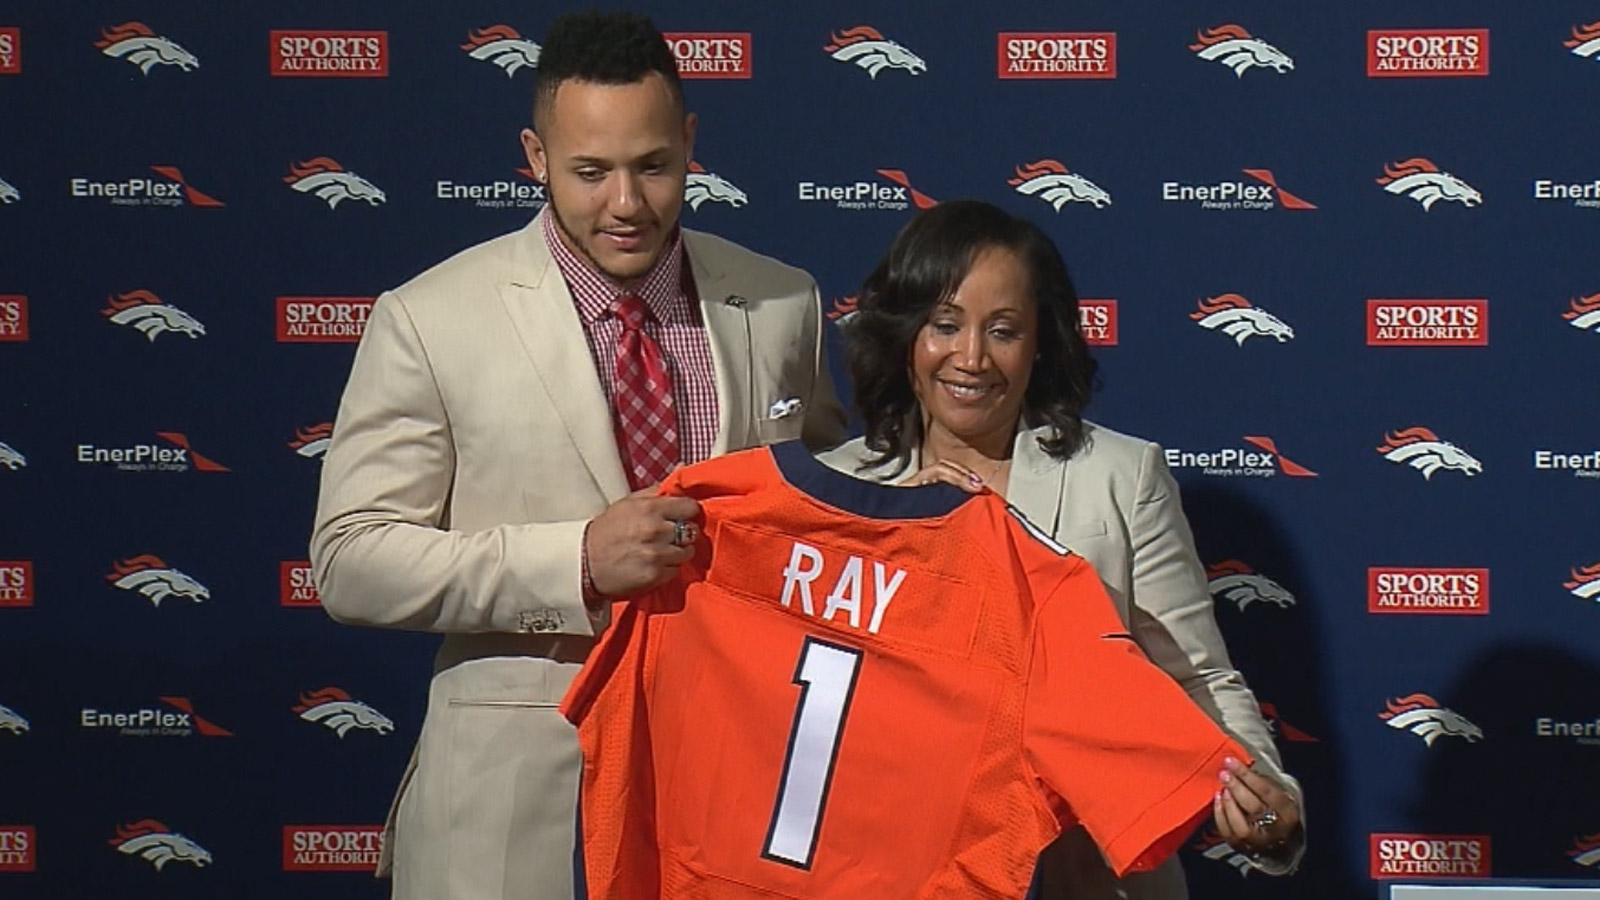 Shane Ray and his mother pose with his Broncos jersey on Friday (credit: CBS)